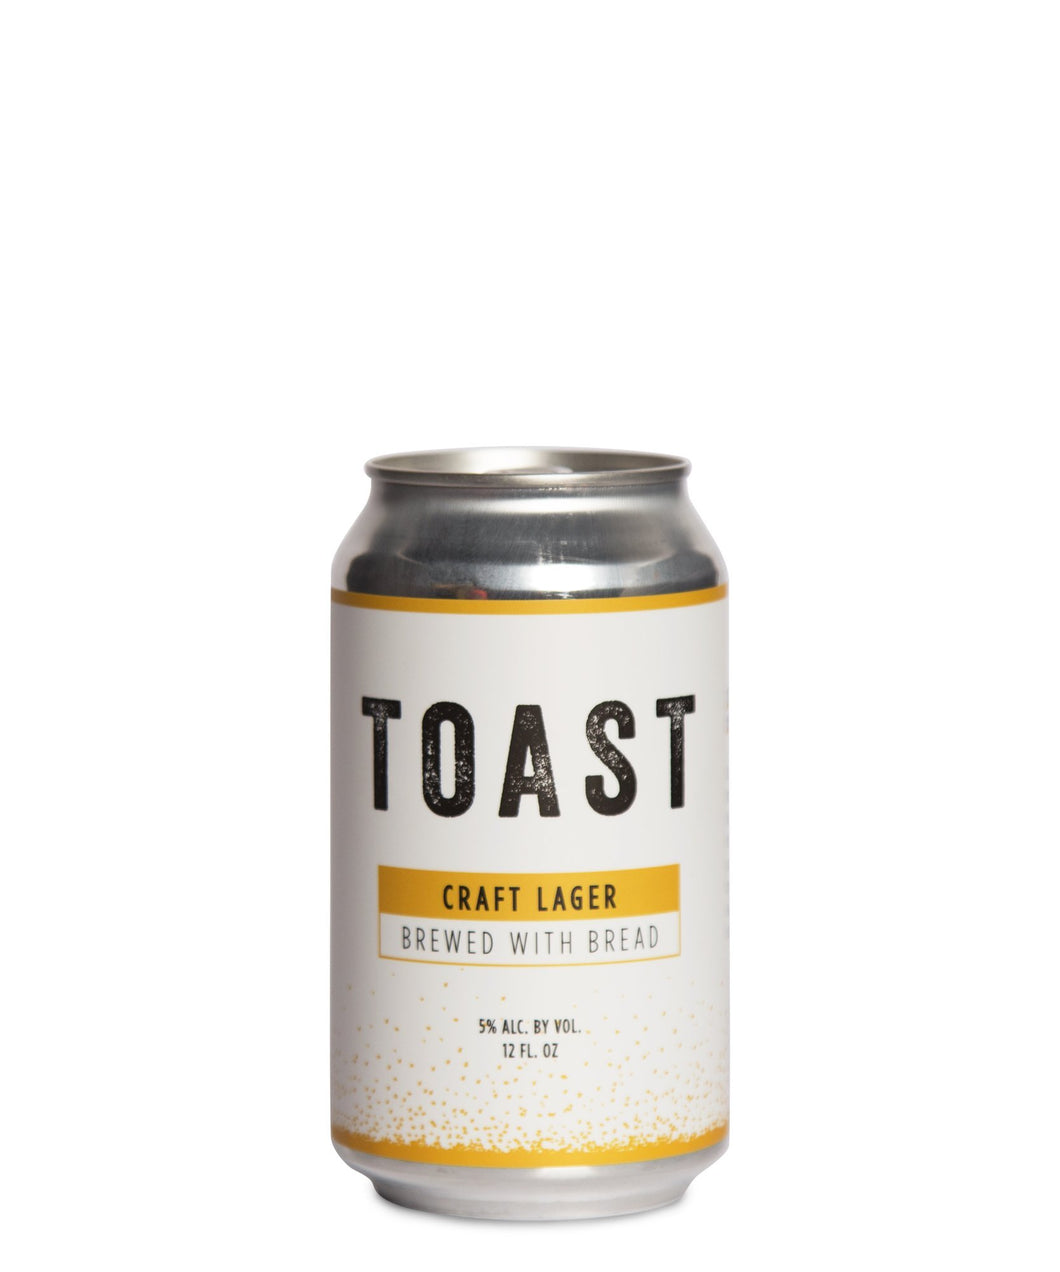 Toast Craft Lager - Toast Ale Delivered By TapRm